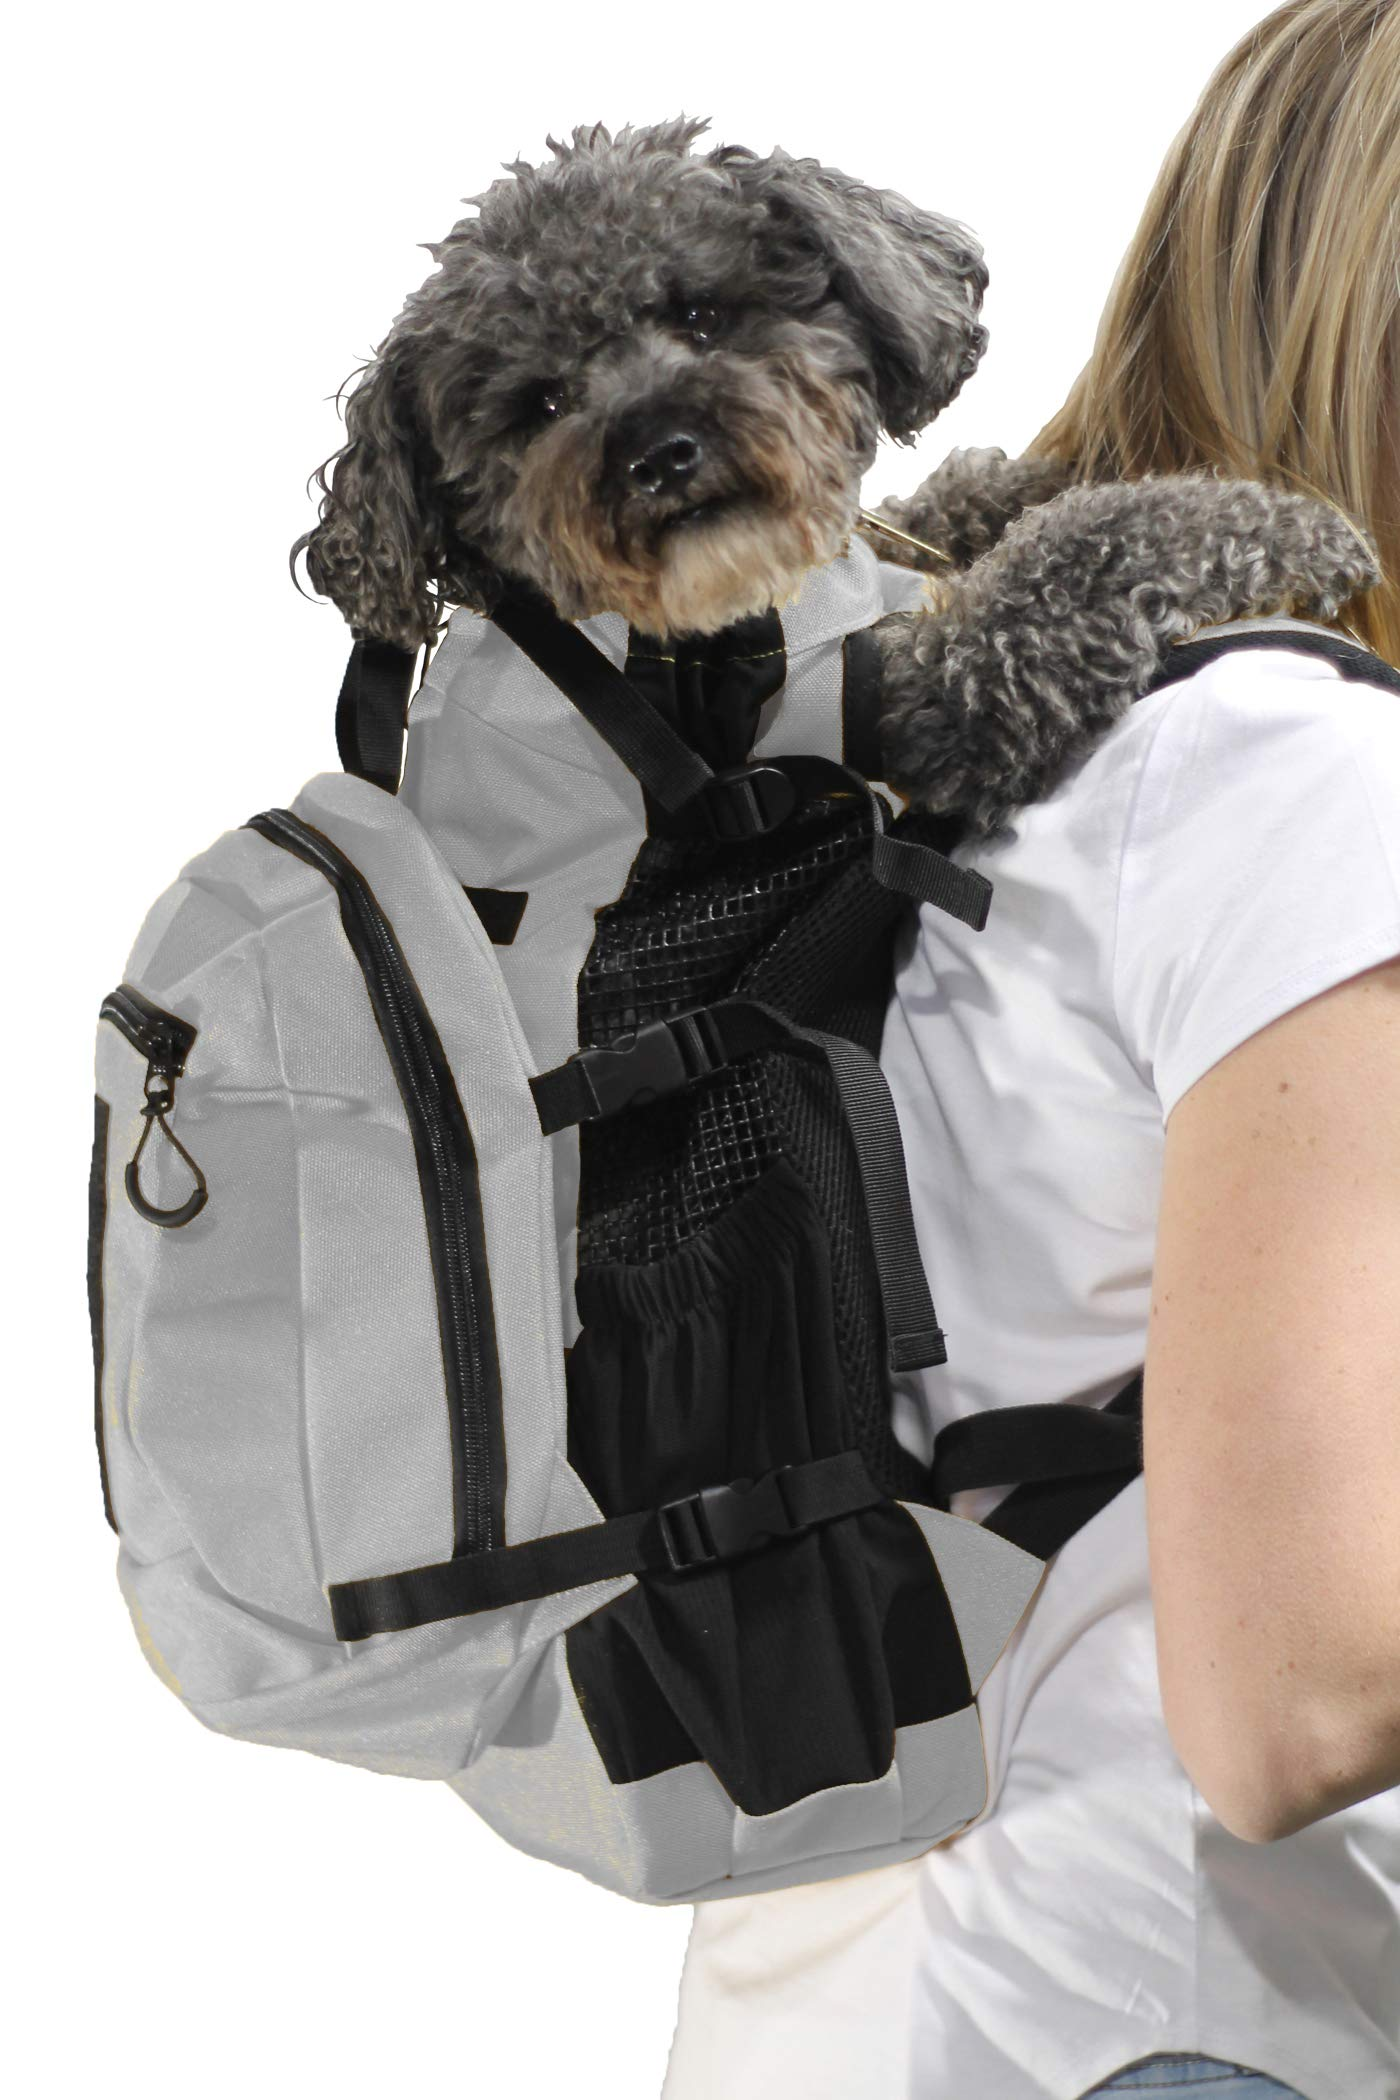 K9 Sport Sack | Dog Carrier Backpack for Small and Medium Pets | Front Facing Adjustable Pack with Storage Bag | Fully Ventilated | Veterinarian Approved (Small, Air Plus - Light Grey) by K9 Sport Sack